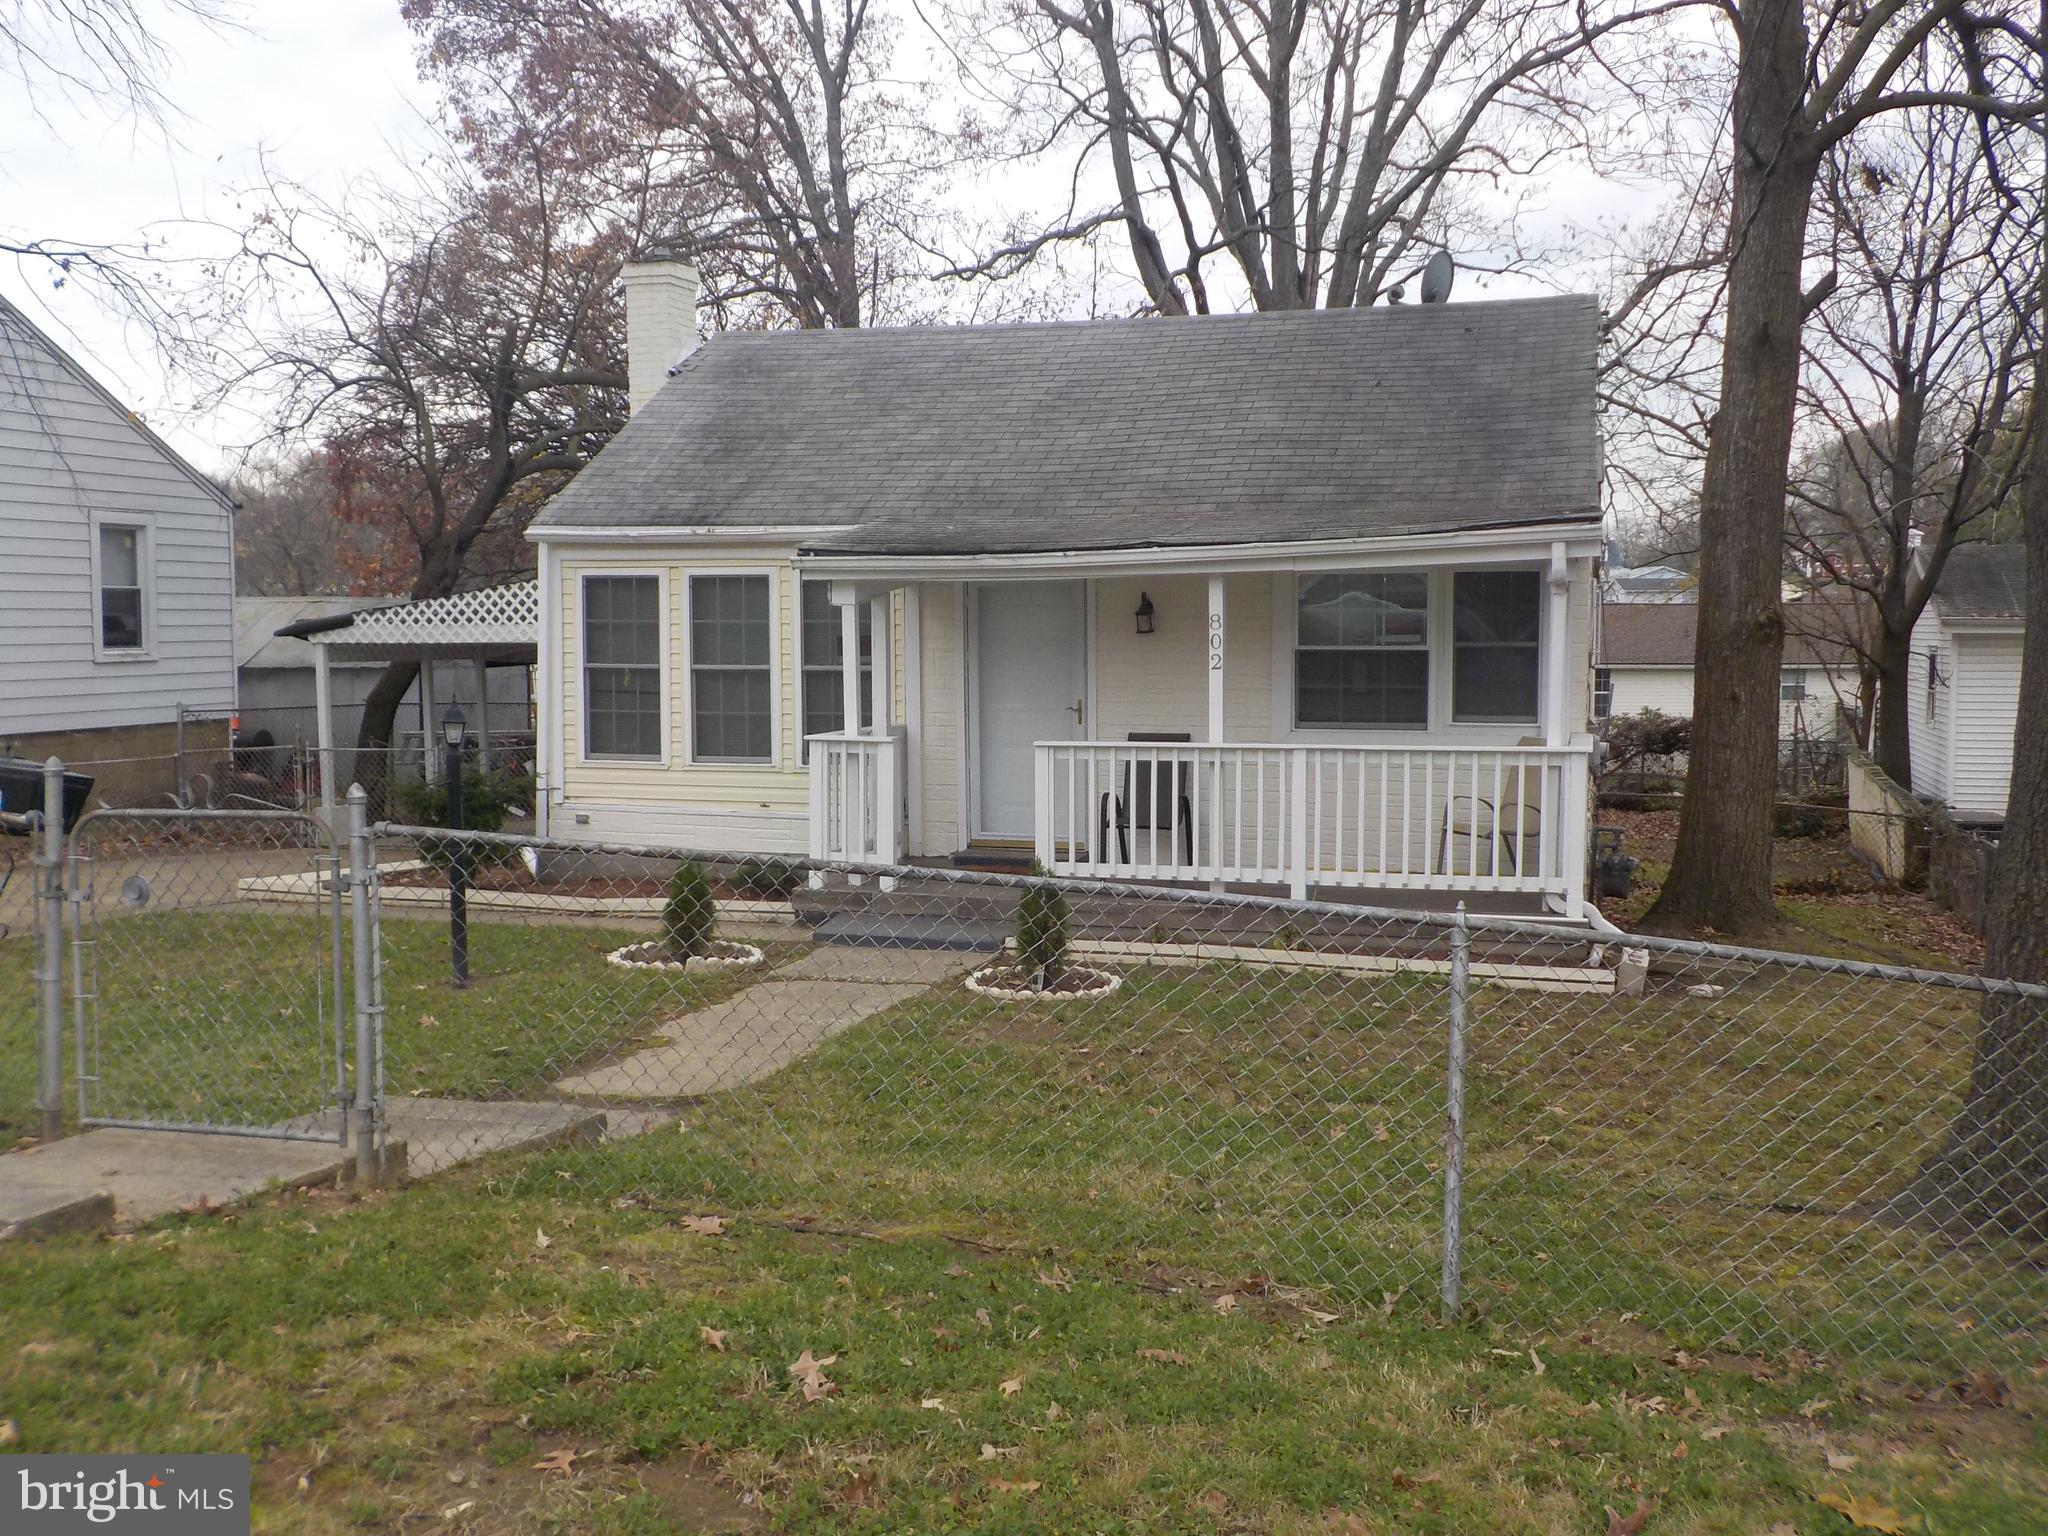 SMALL 3 BEDROOM 2 BATH DETACHED HOME WITH A FENCED YARD AND A CARPORT!! KITCHEN HAS STOVE AND REFRIGERATOR!! LARGE LOWER LEVEL, CELLAR TYPE BASEMENT WITH A WASHER AND DRYER AND PLENTY OF ROOM FOR STORAGE!! CLOSE TO TRANSPORTATION AND THE CITY!!